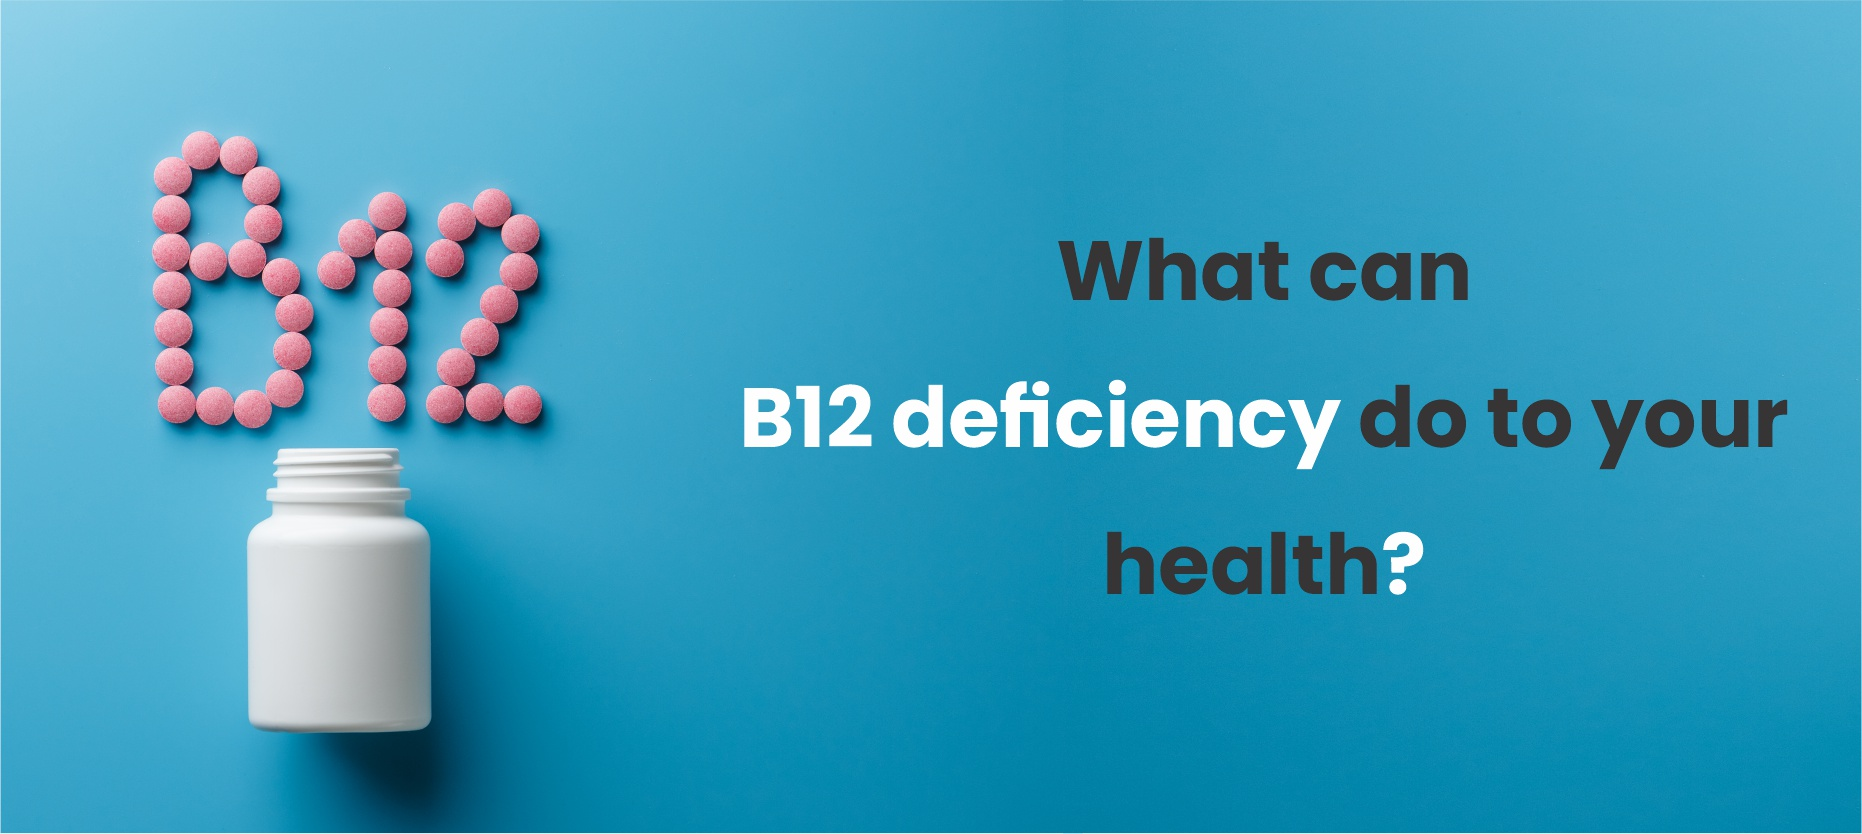 What can B12 deficiency do to your health?